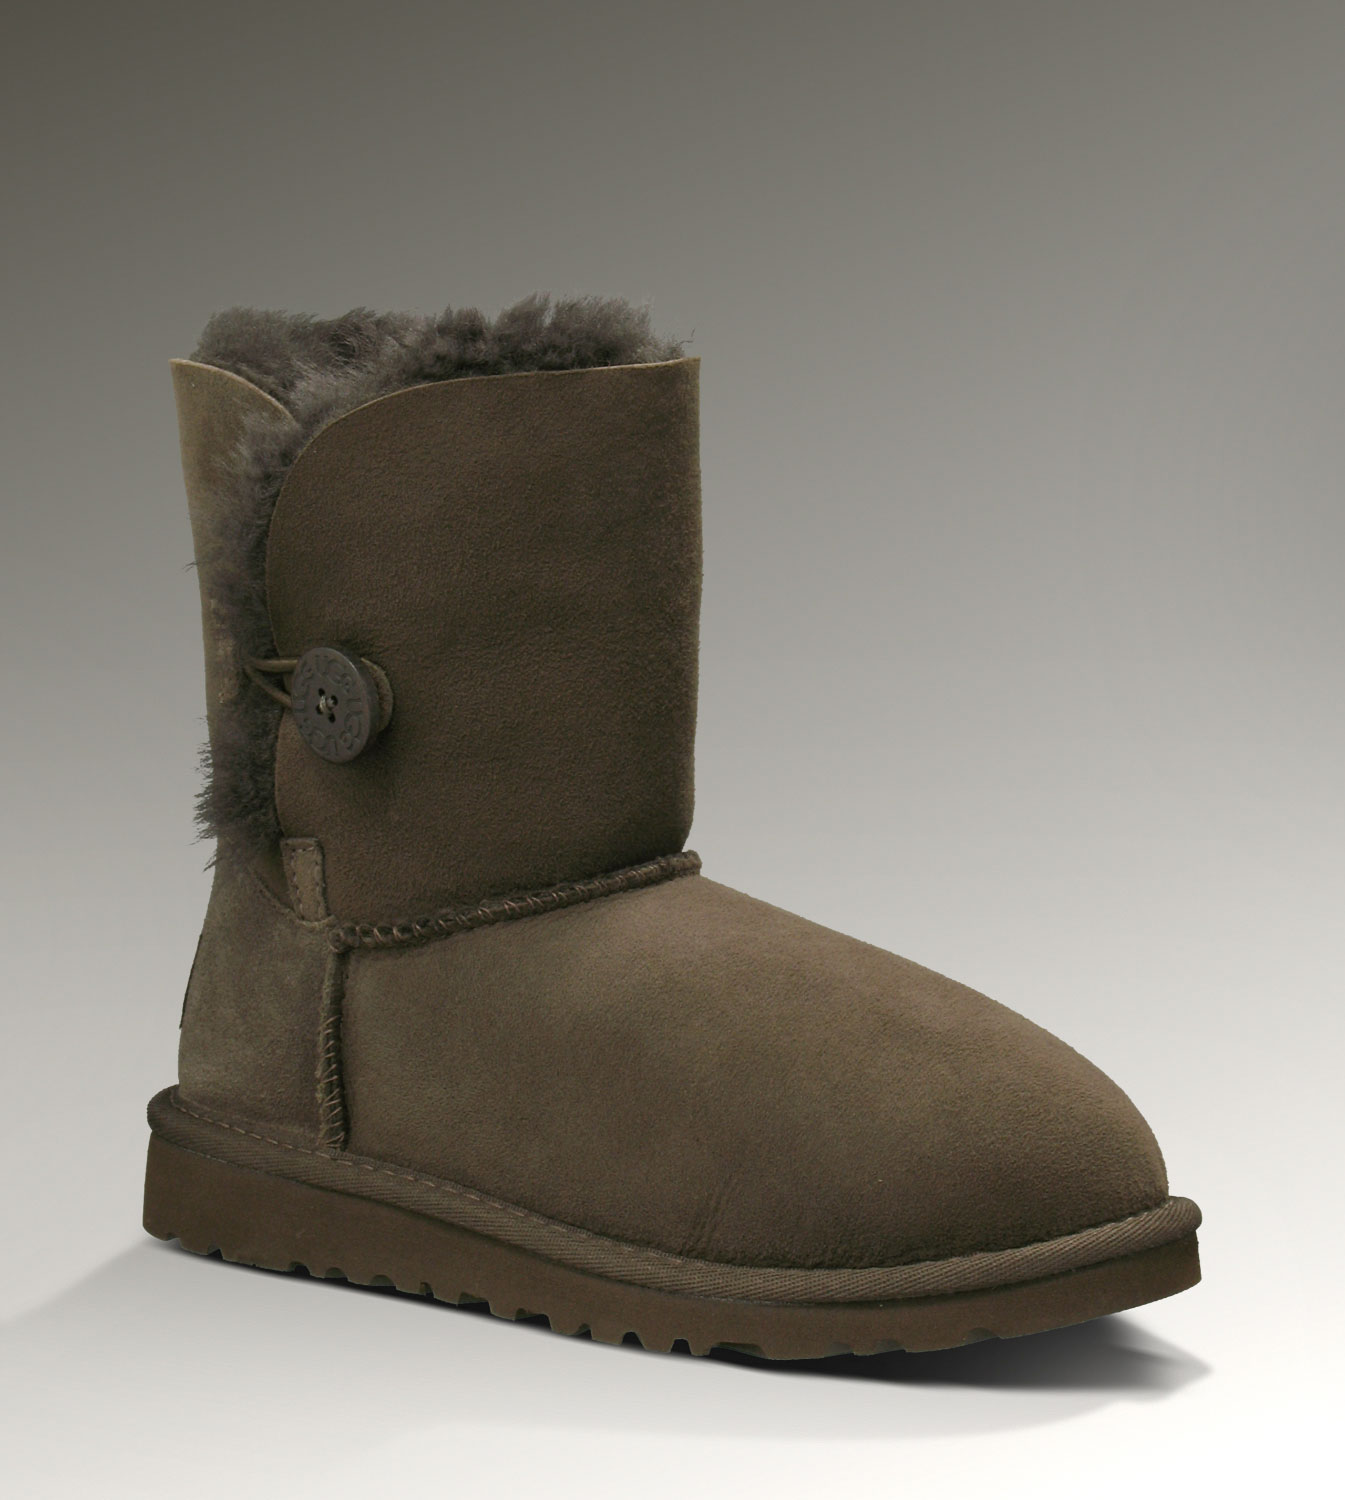 UGG Bailey Button 5991 Chocolate Boots